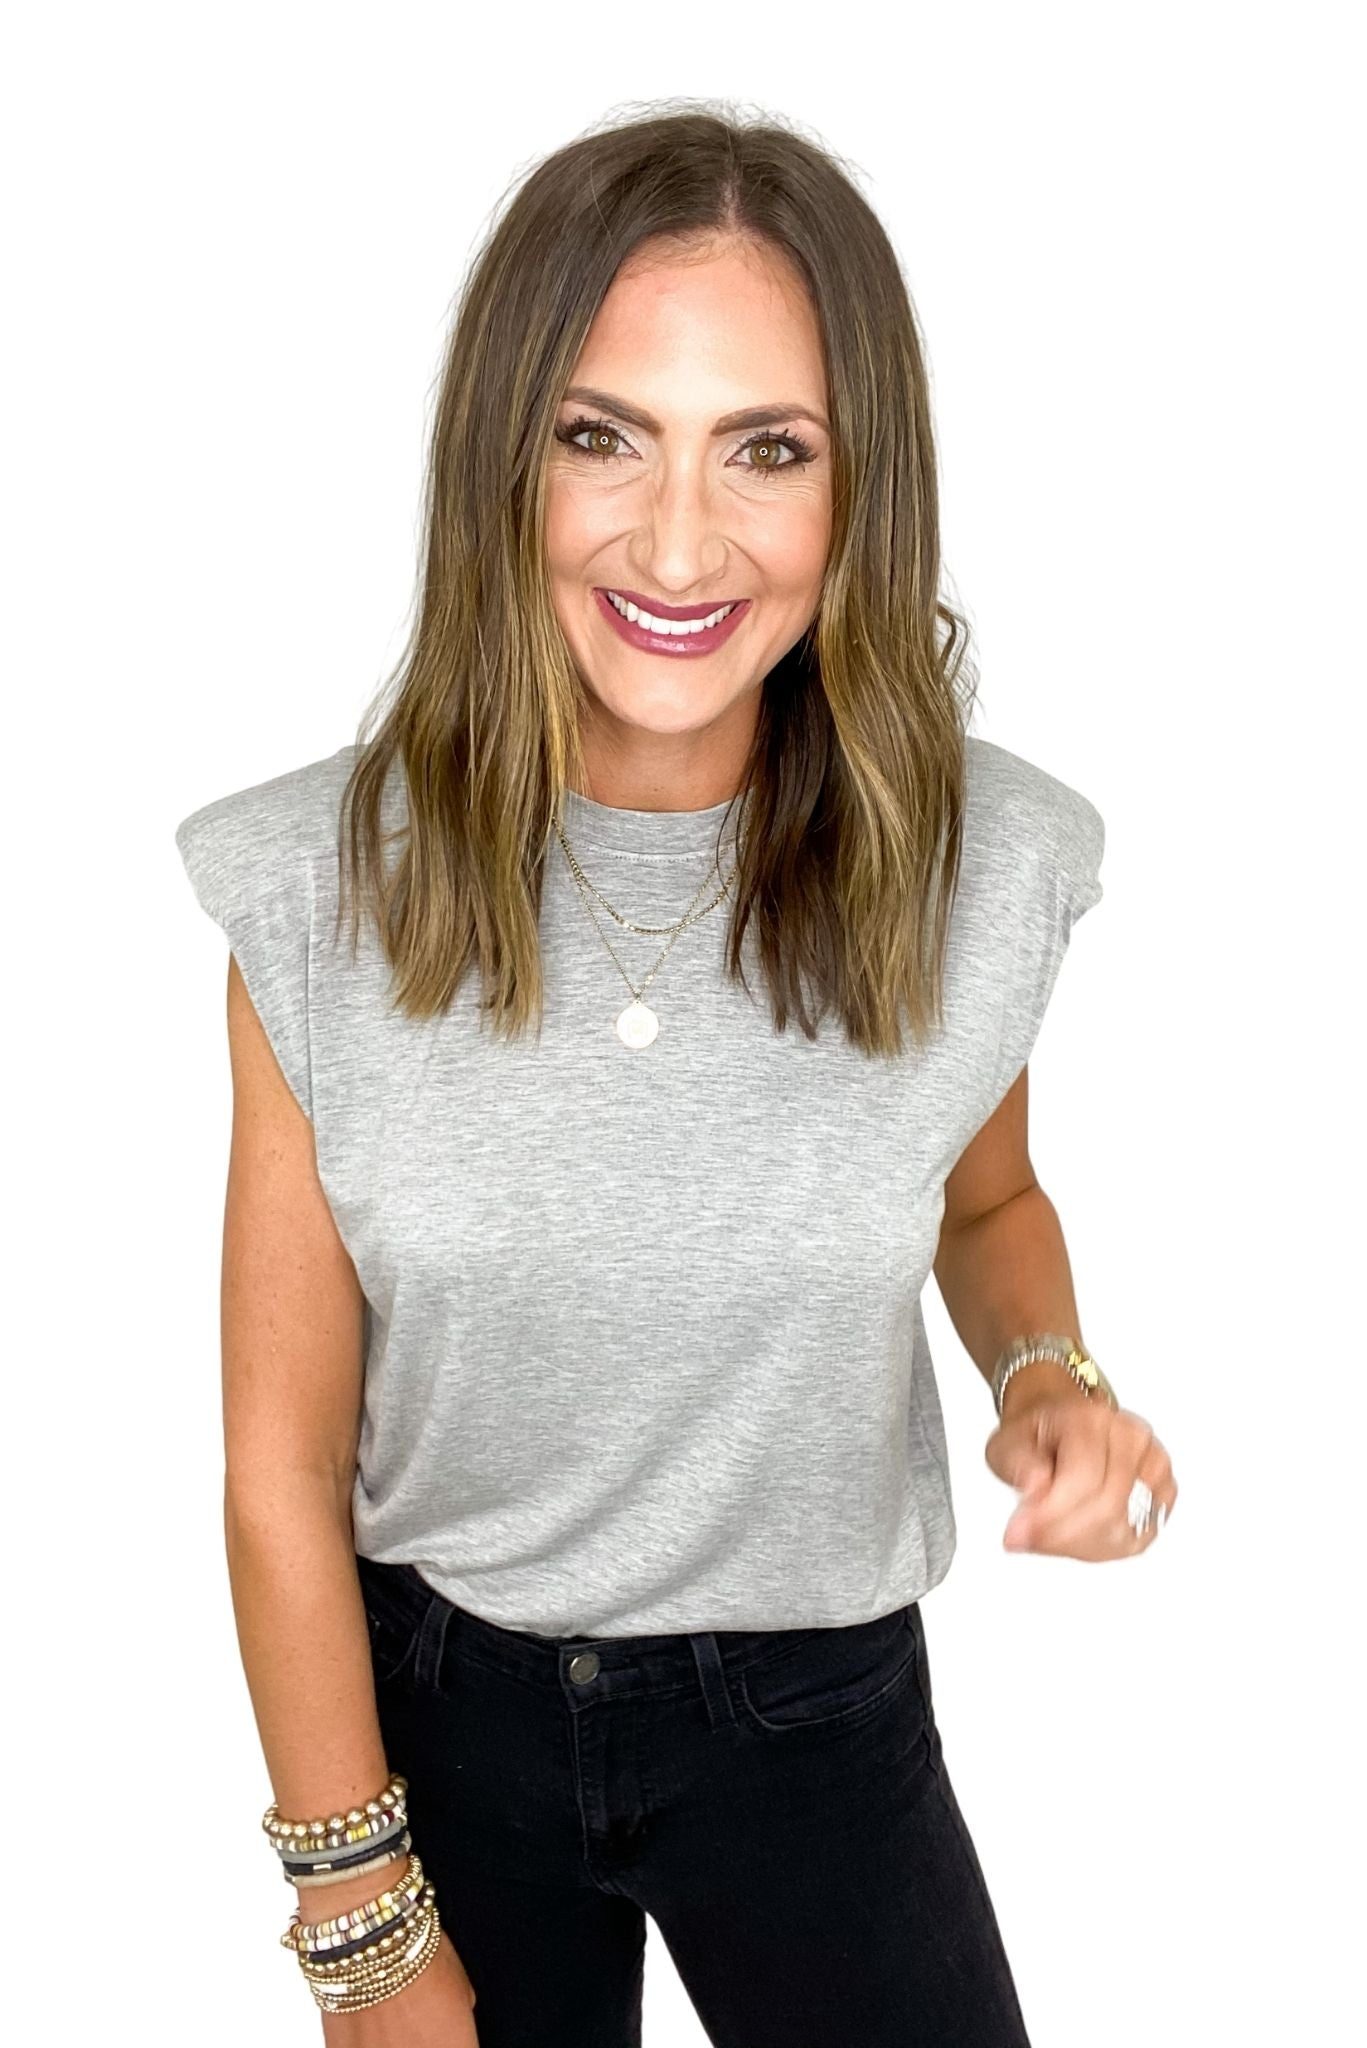 Heather Gray Shoulder Pad Sleeveless Top